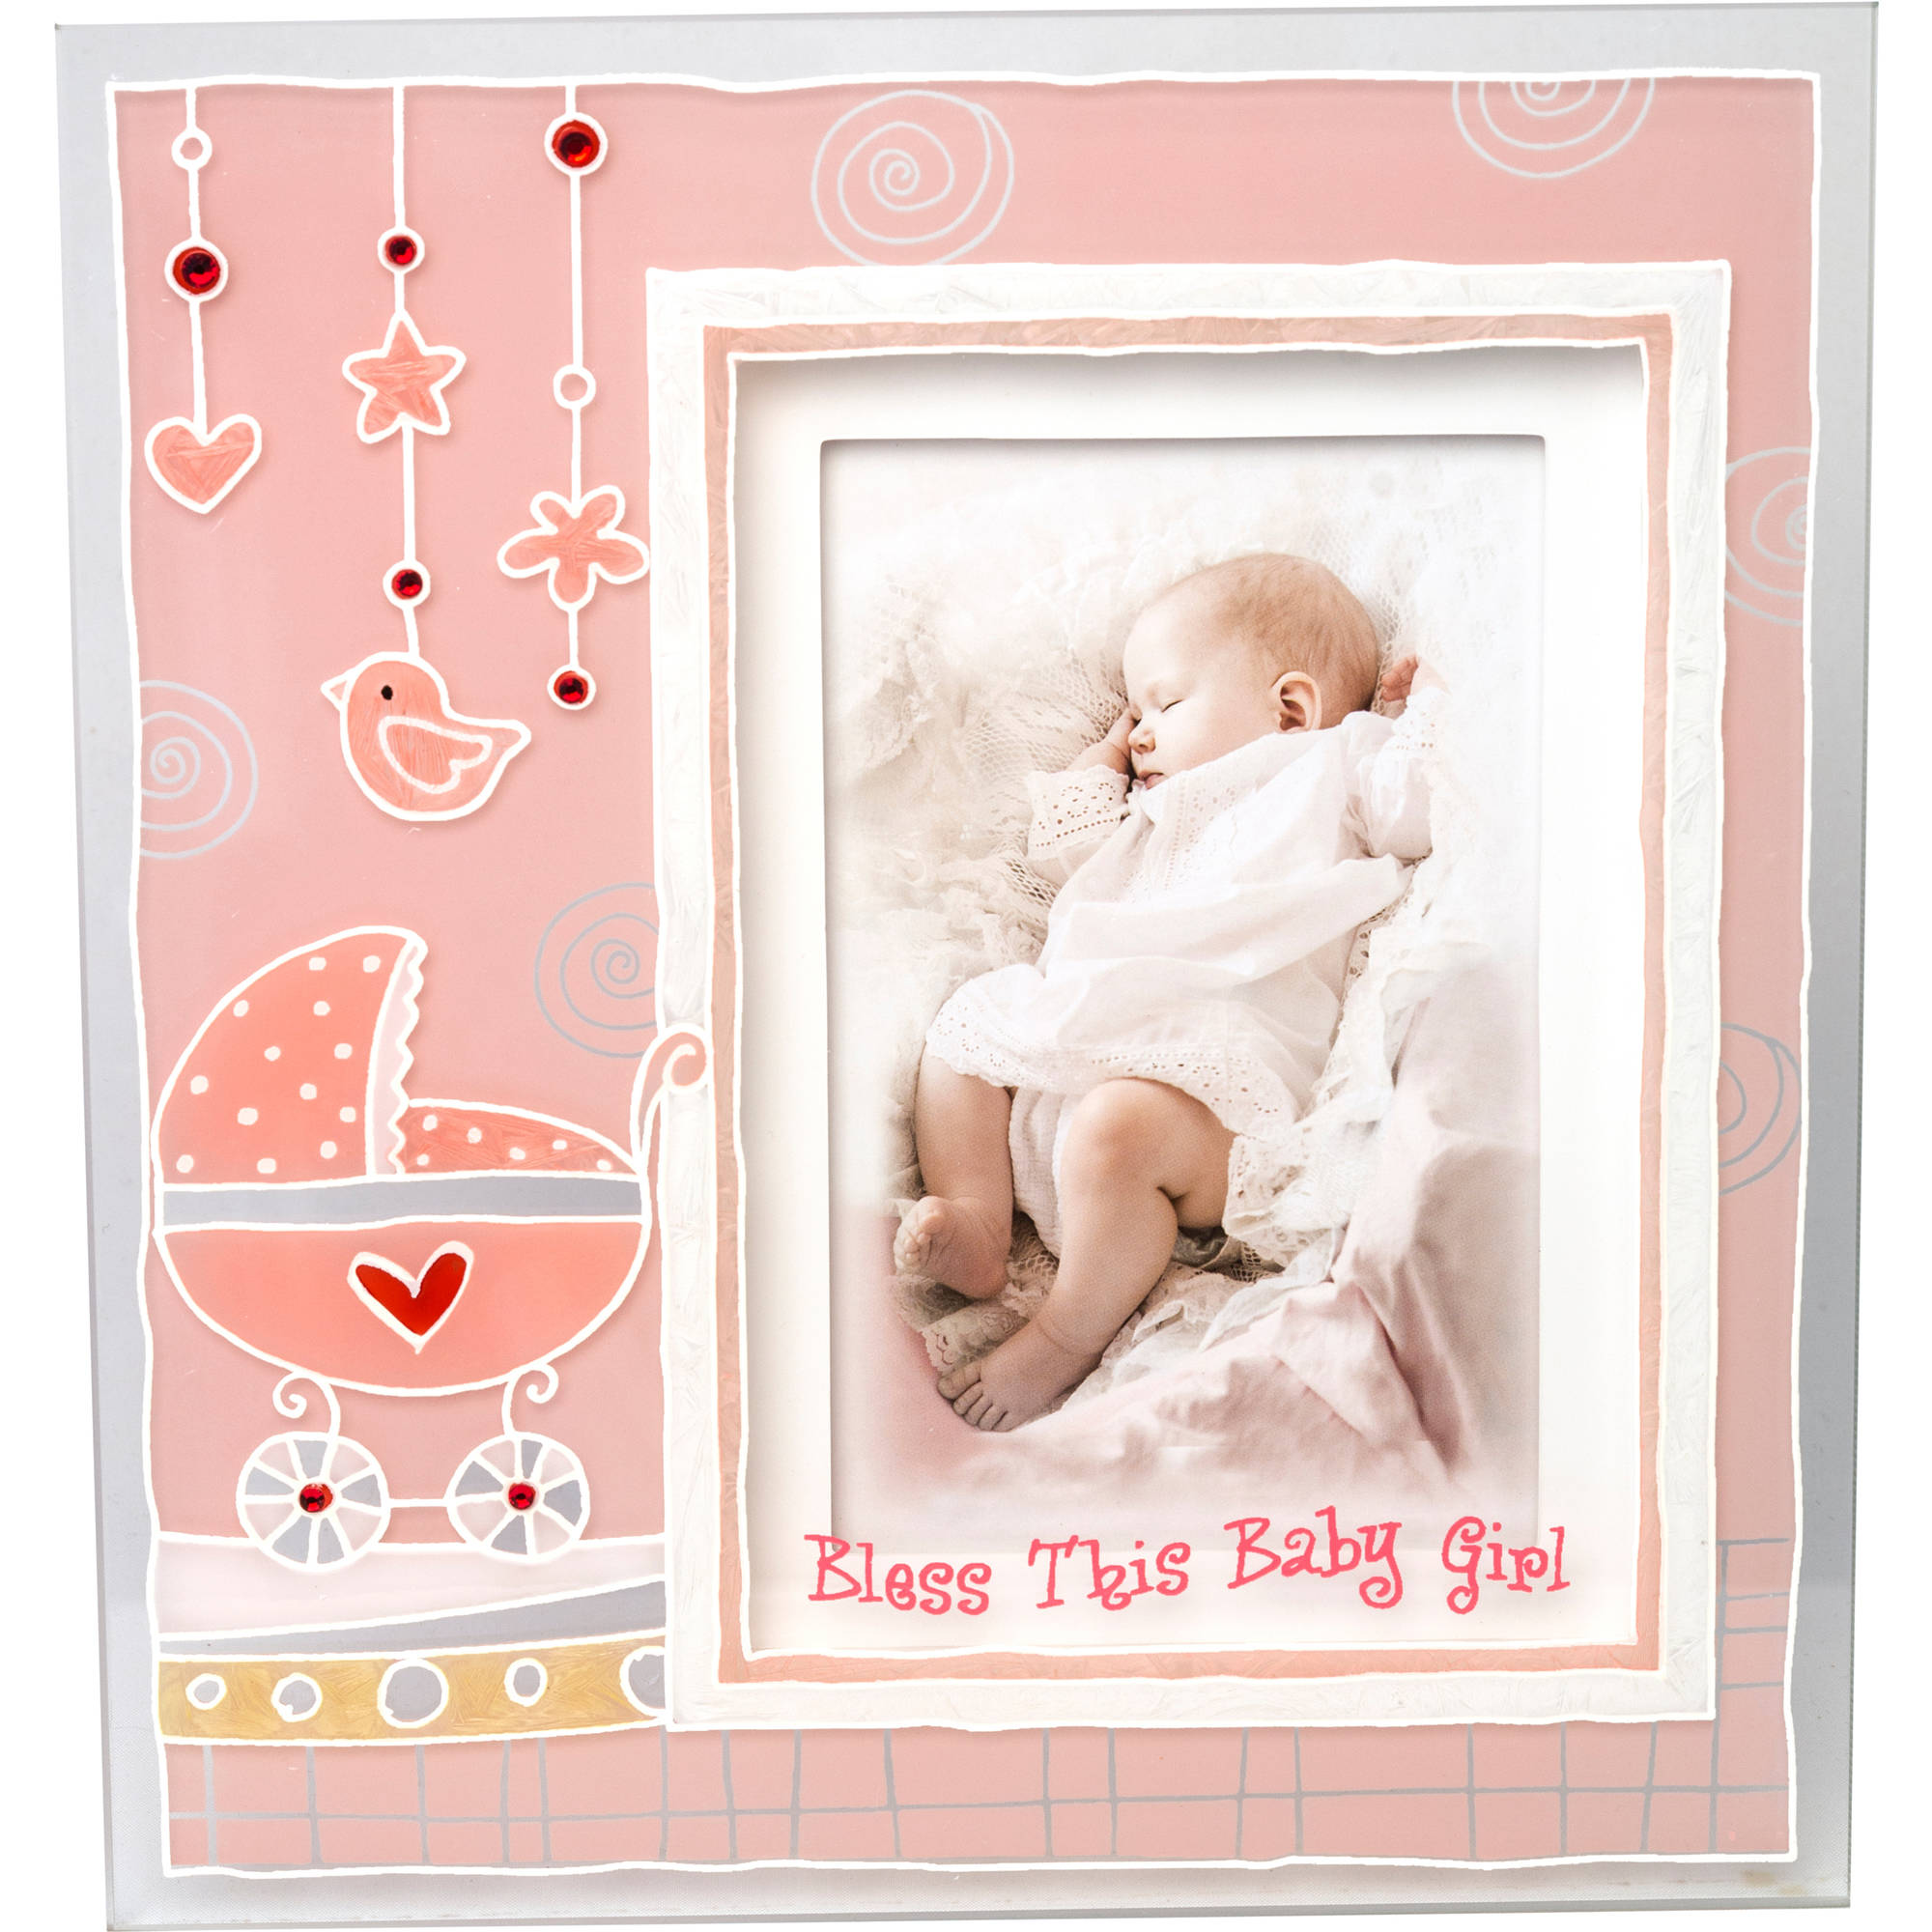 """Girls Christening Baptism Painted 3D Glass Frame With """"Bless This Baby Girl"""" Inscribed Below Photo"""